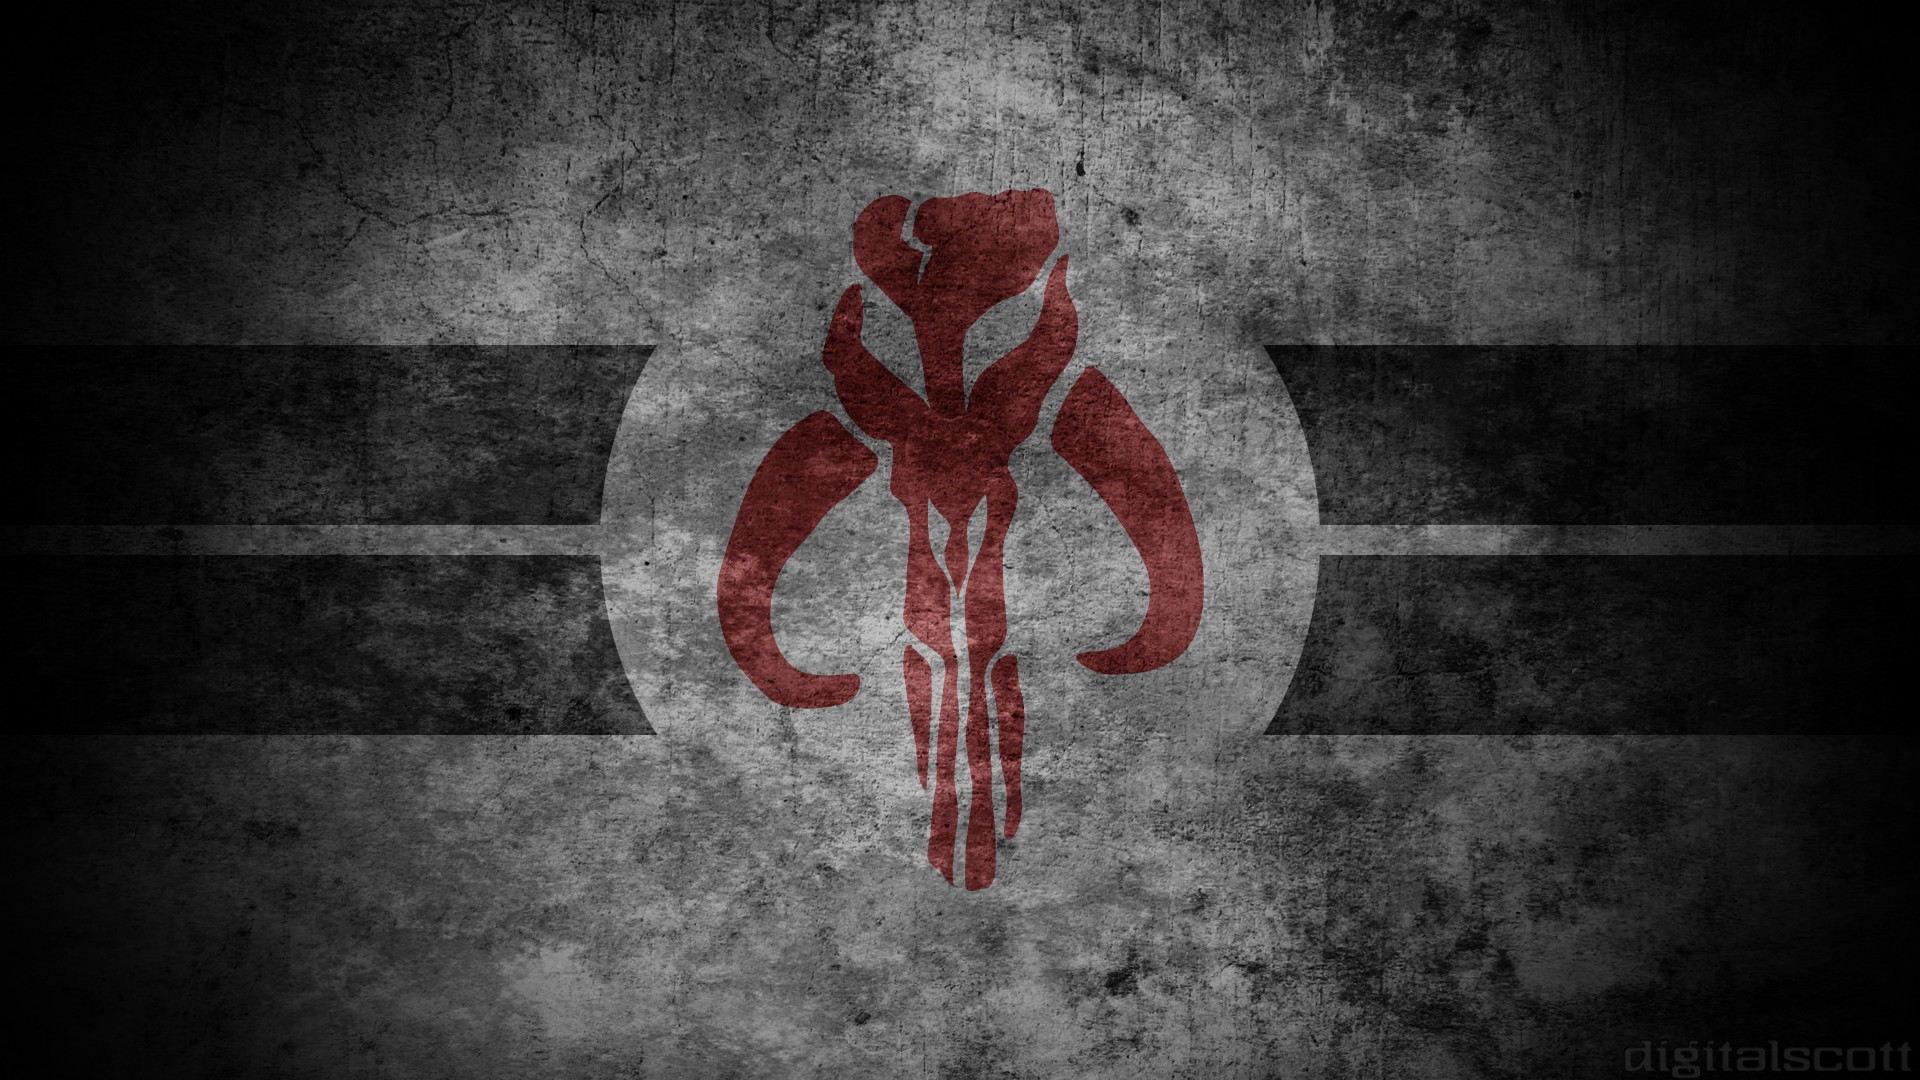 Mandalorian HD | Mandalorian HD Images, Pictures, Wallpapers on NMgnCP